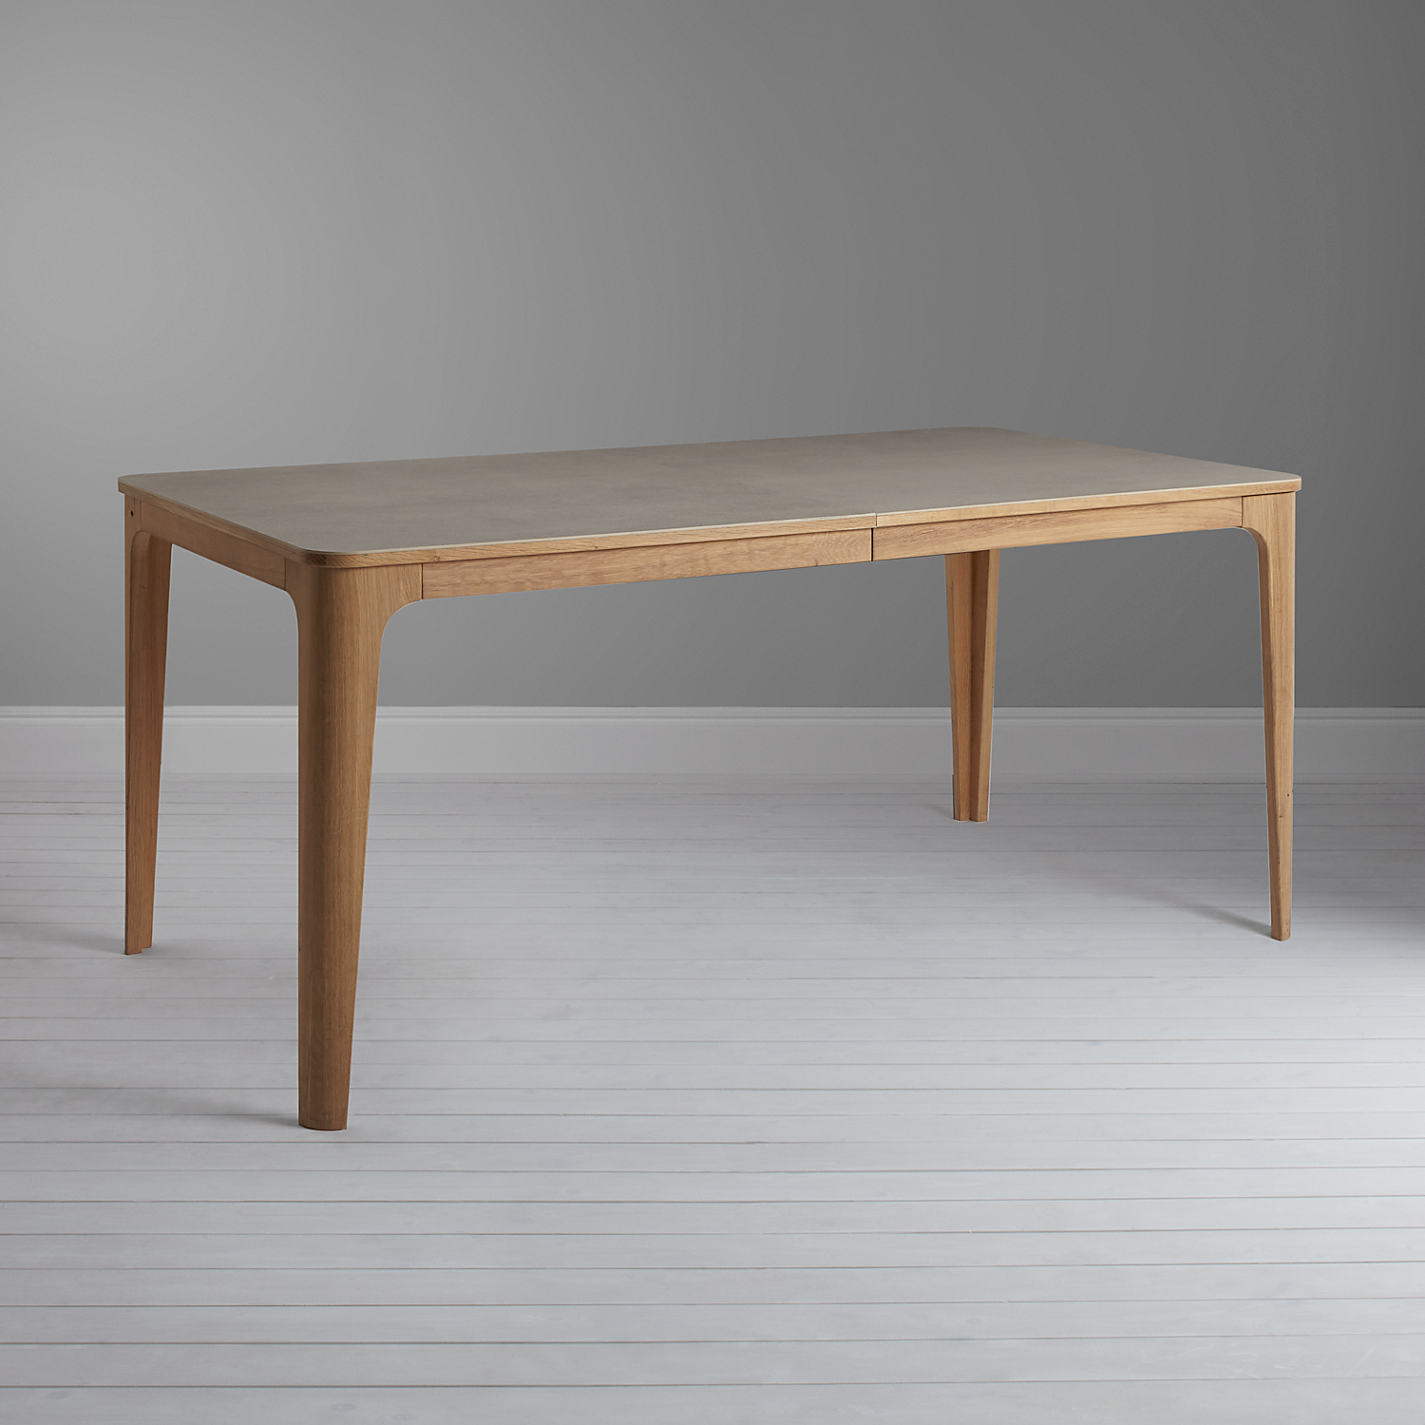 Buy Ebbe Gehl For John Lewis Mira Ceramic Top Oak Dining Table Online At Johnlewis